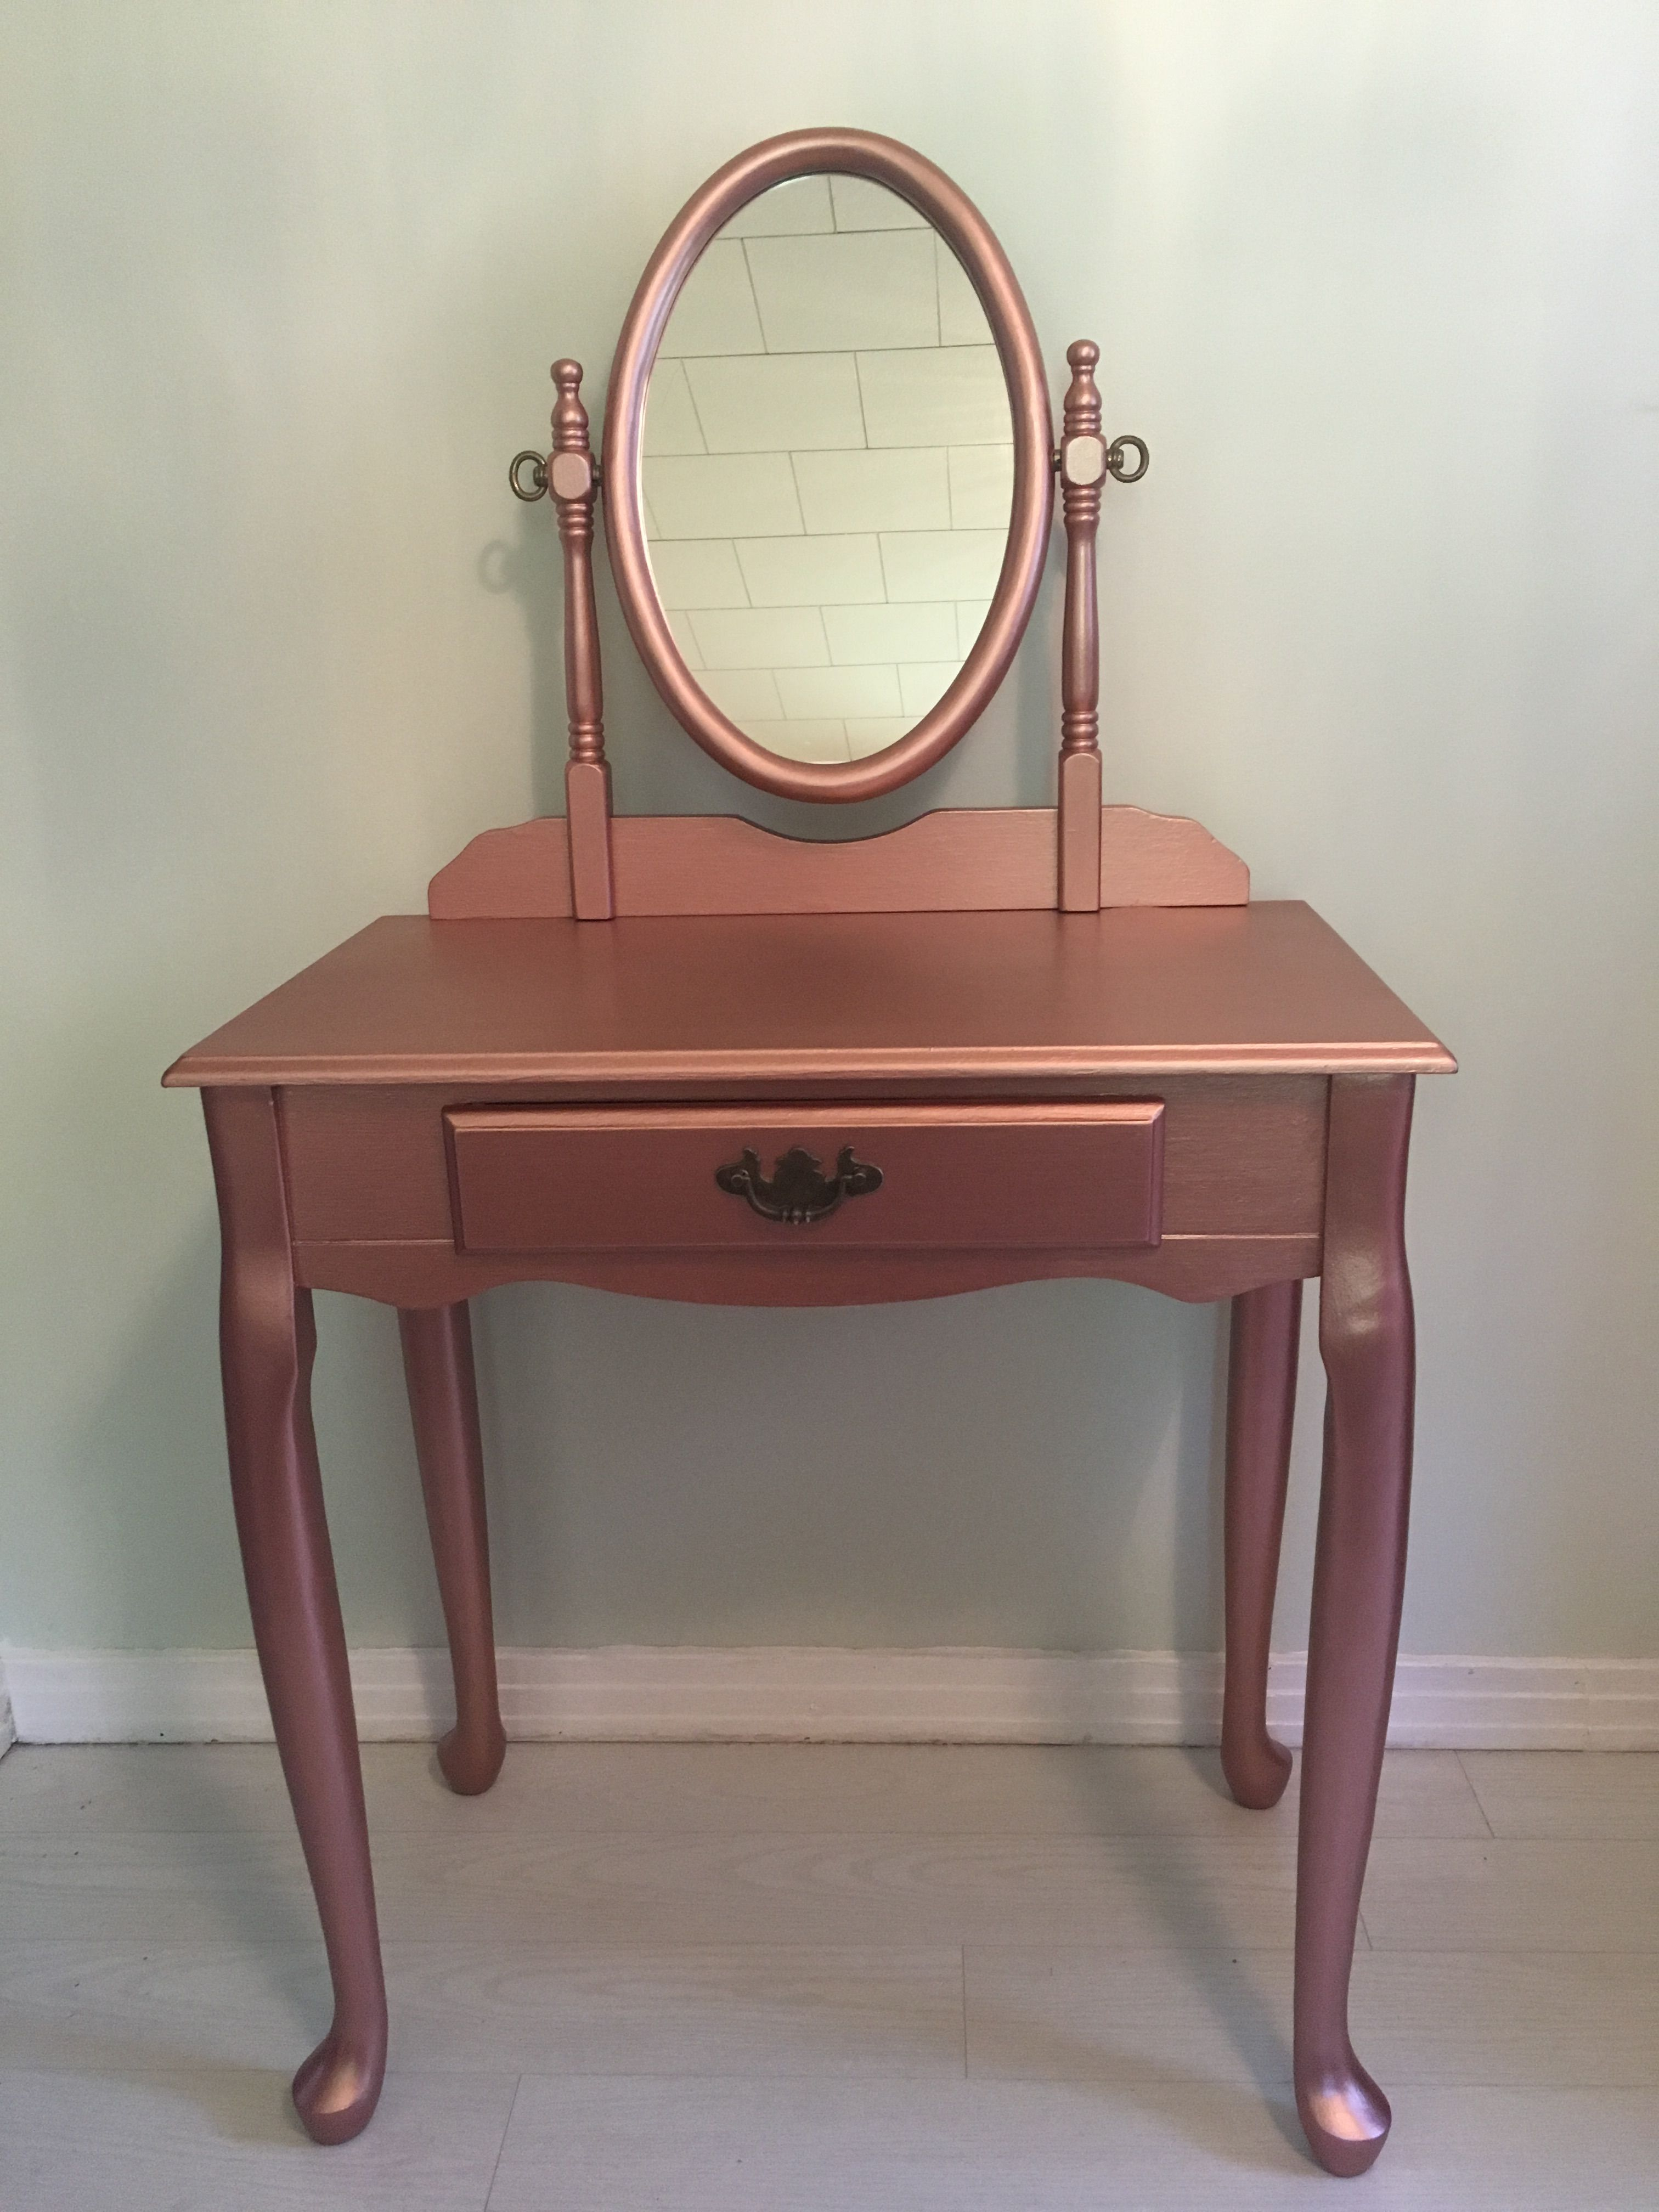 I Painted This Cherry Wood Vanity Rose Gold For My Mother She Loved It Gold Painted Furniture Diy Gold Decor Rose Gold Furniture